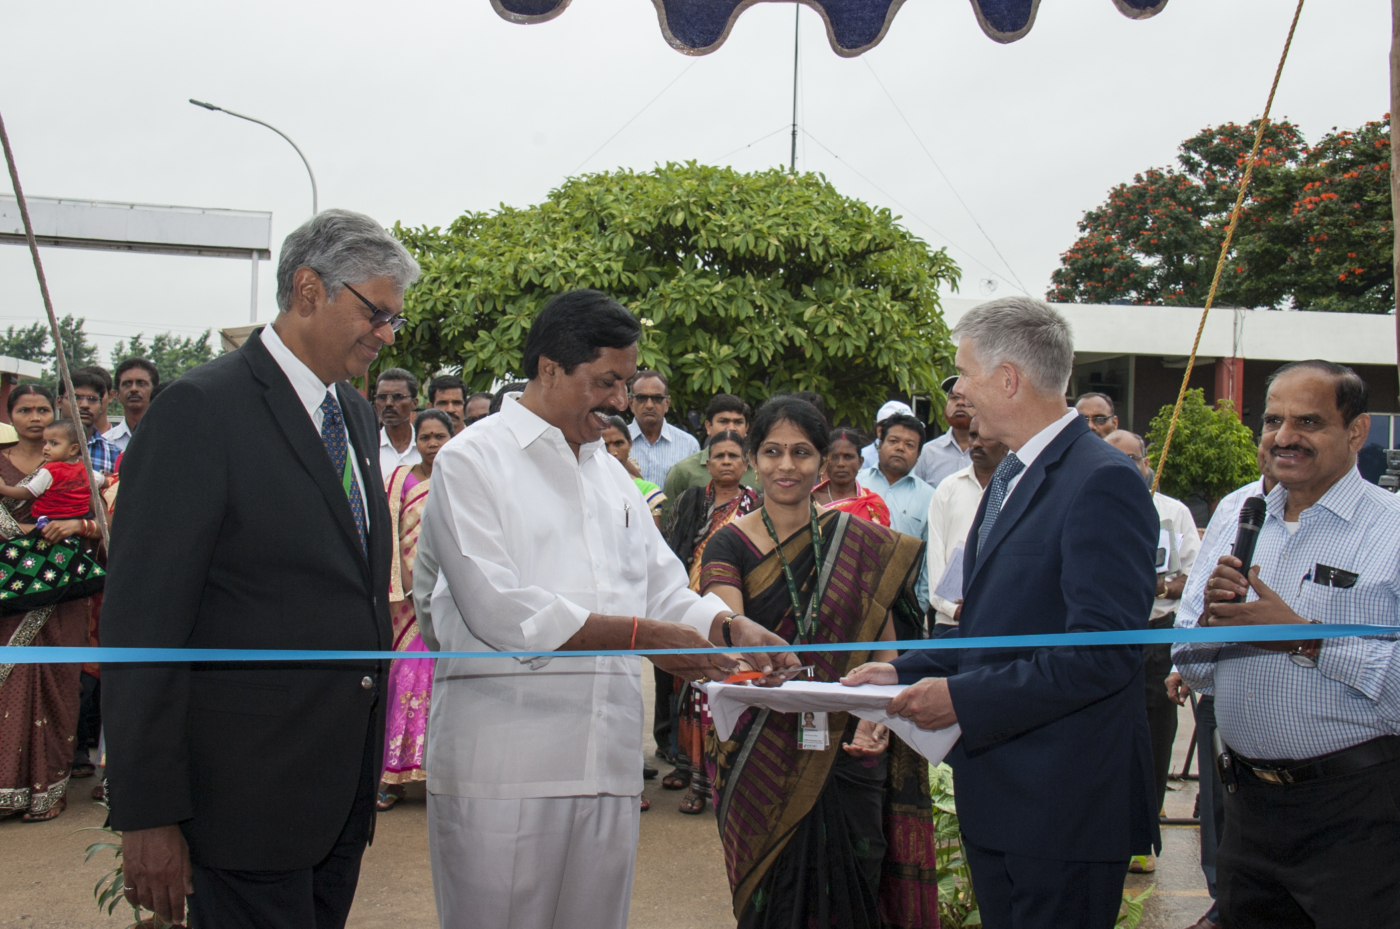 Deputy Speaker of Karnataka Legislative Assembly, Mr Shivashankar Reddy, inaugurates the National Farmers' Day event at ICRISAT headquarters. Also seen Dr Chandra Madramootoo (far left), Dr David Bergvinson (second from right), and Dr Suhas P Wani (far right).